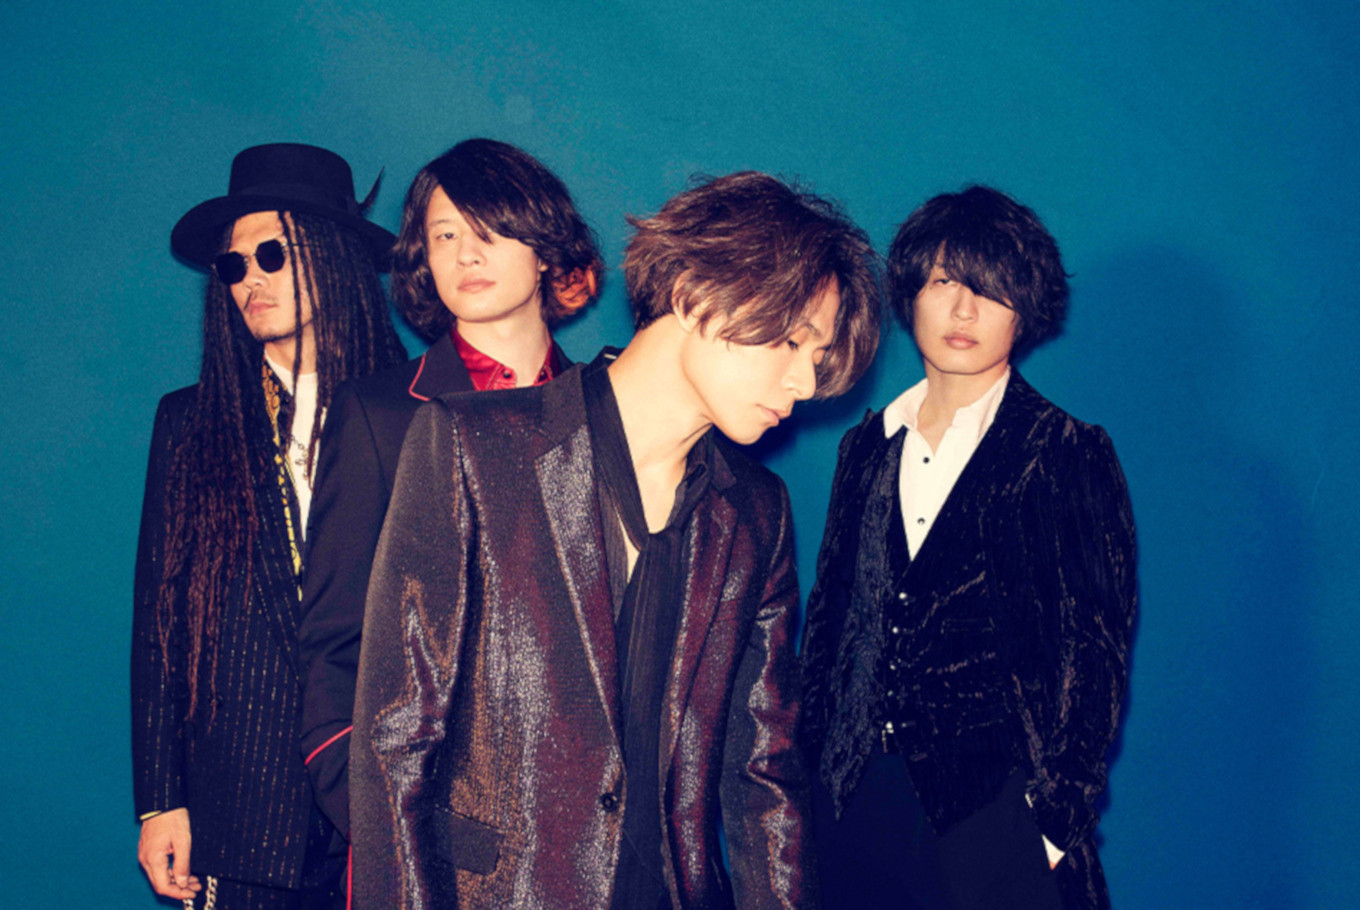 Japanese rock band Alexandros to perform in Jakarta in June